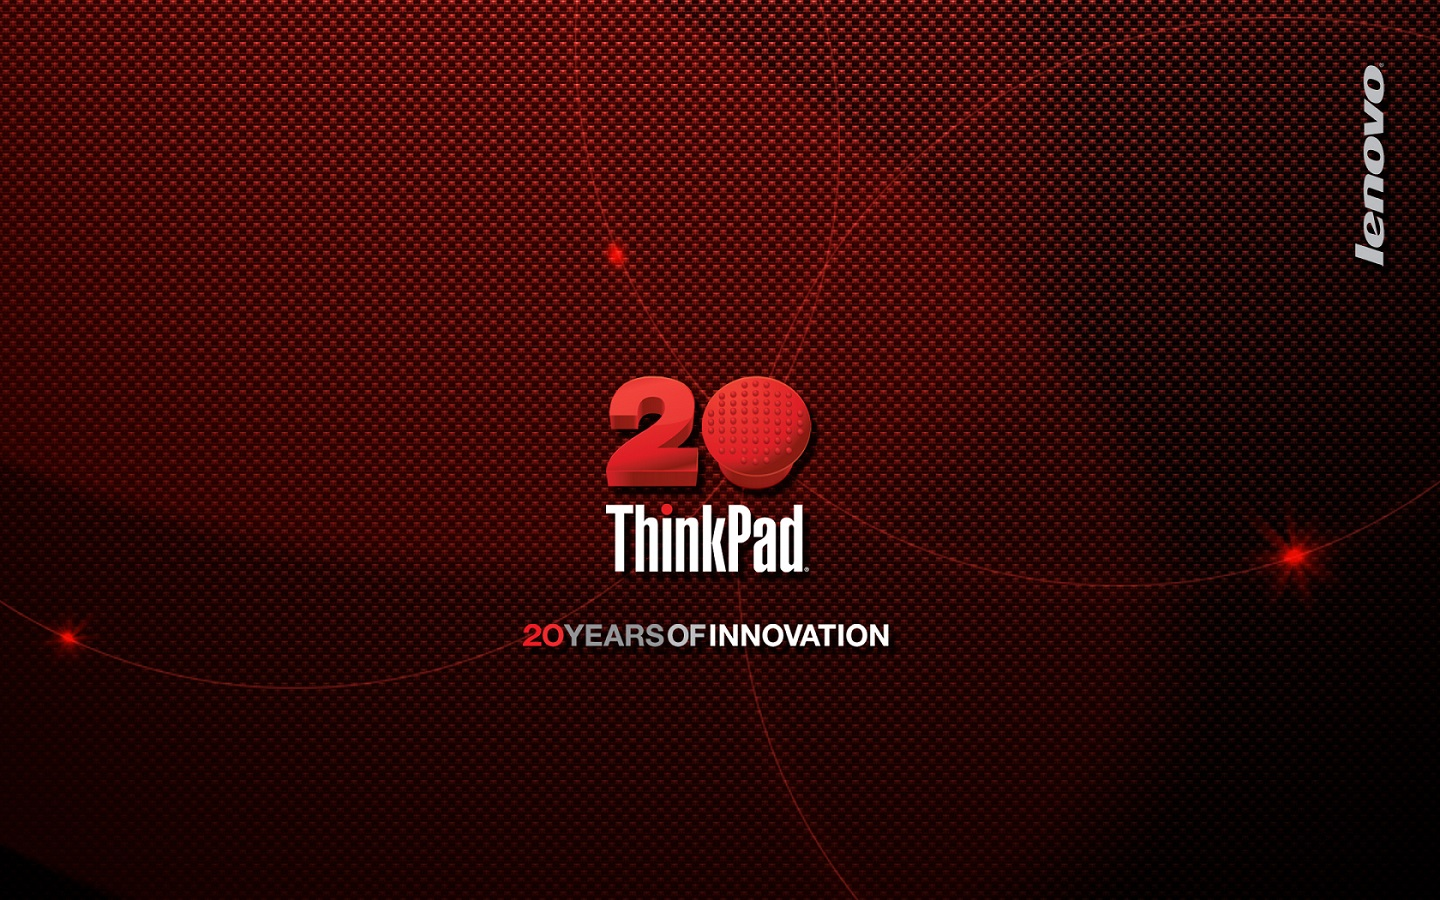 Wallpaper Thinkpad 20 ans